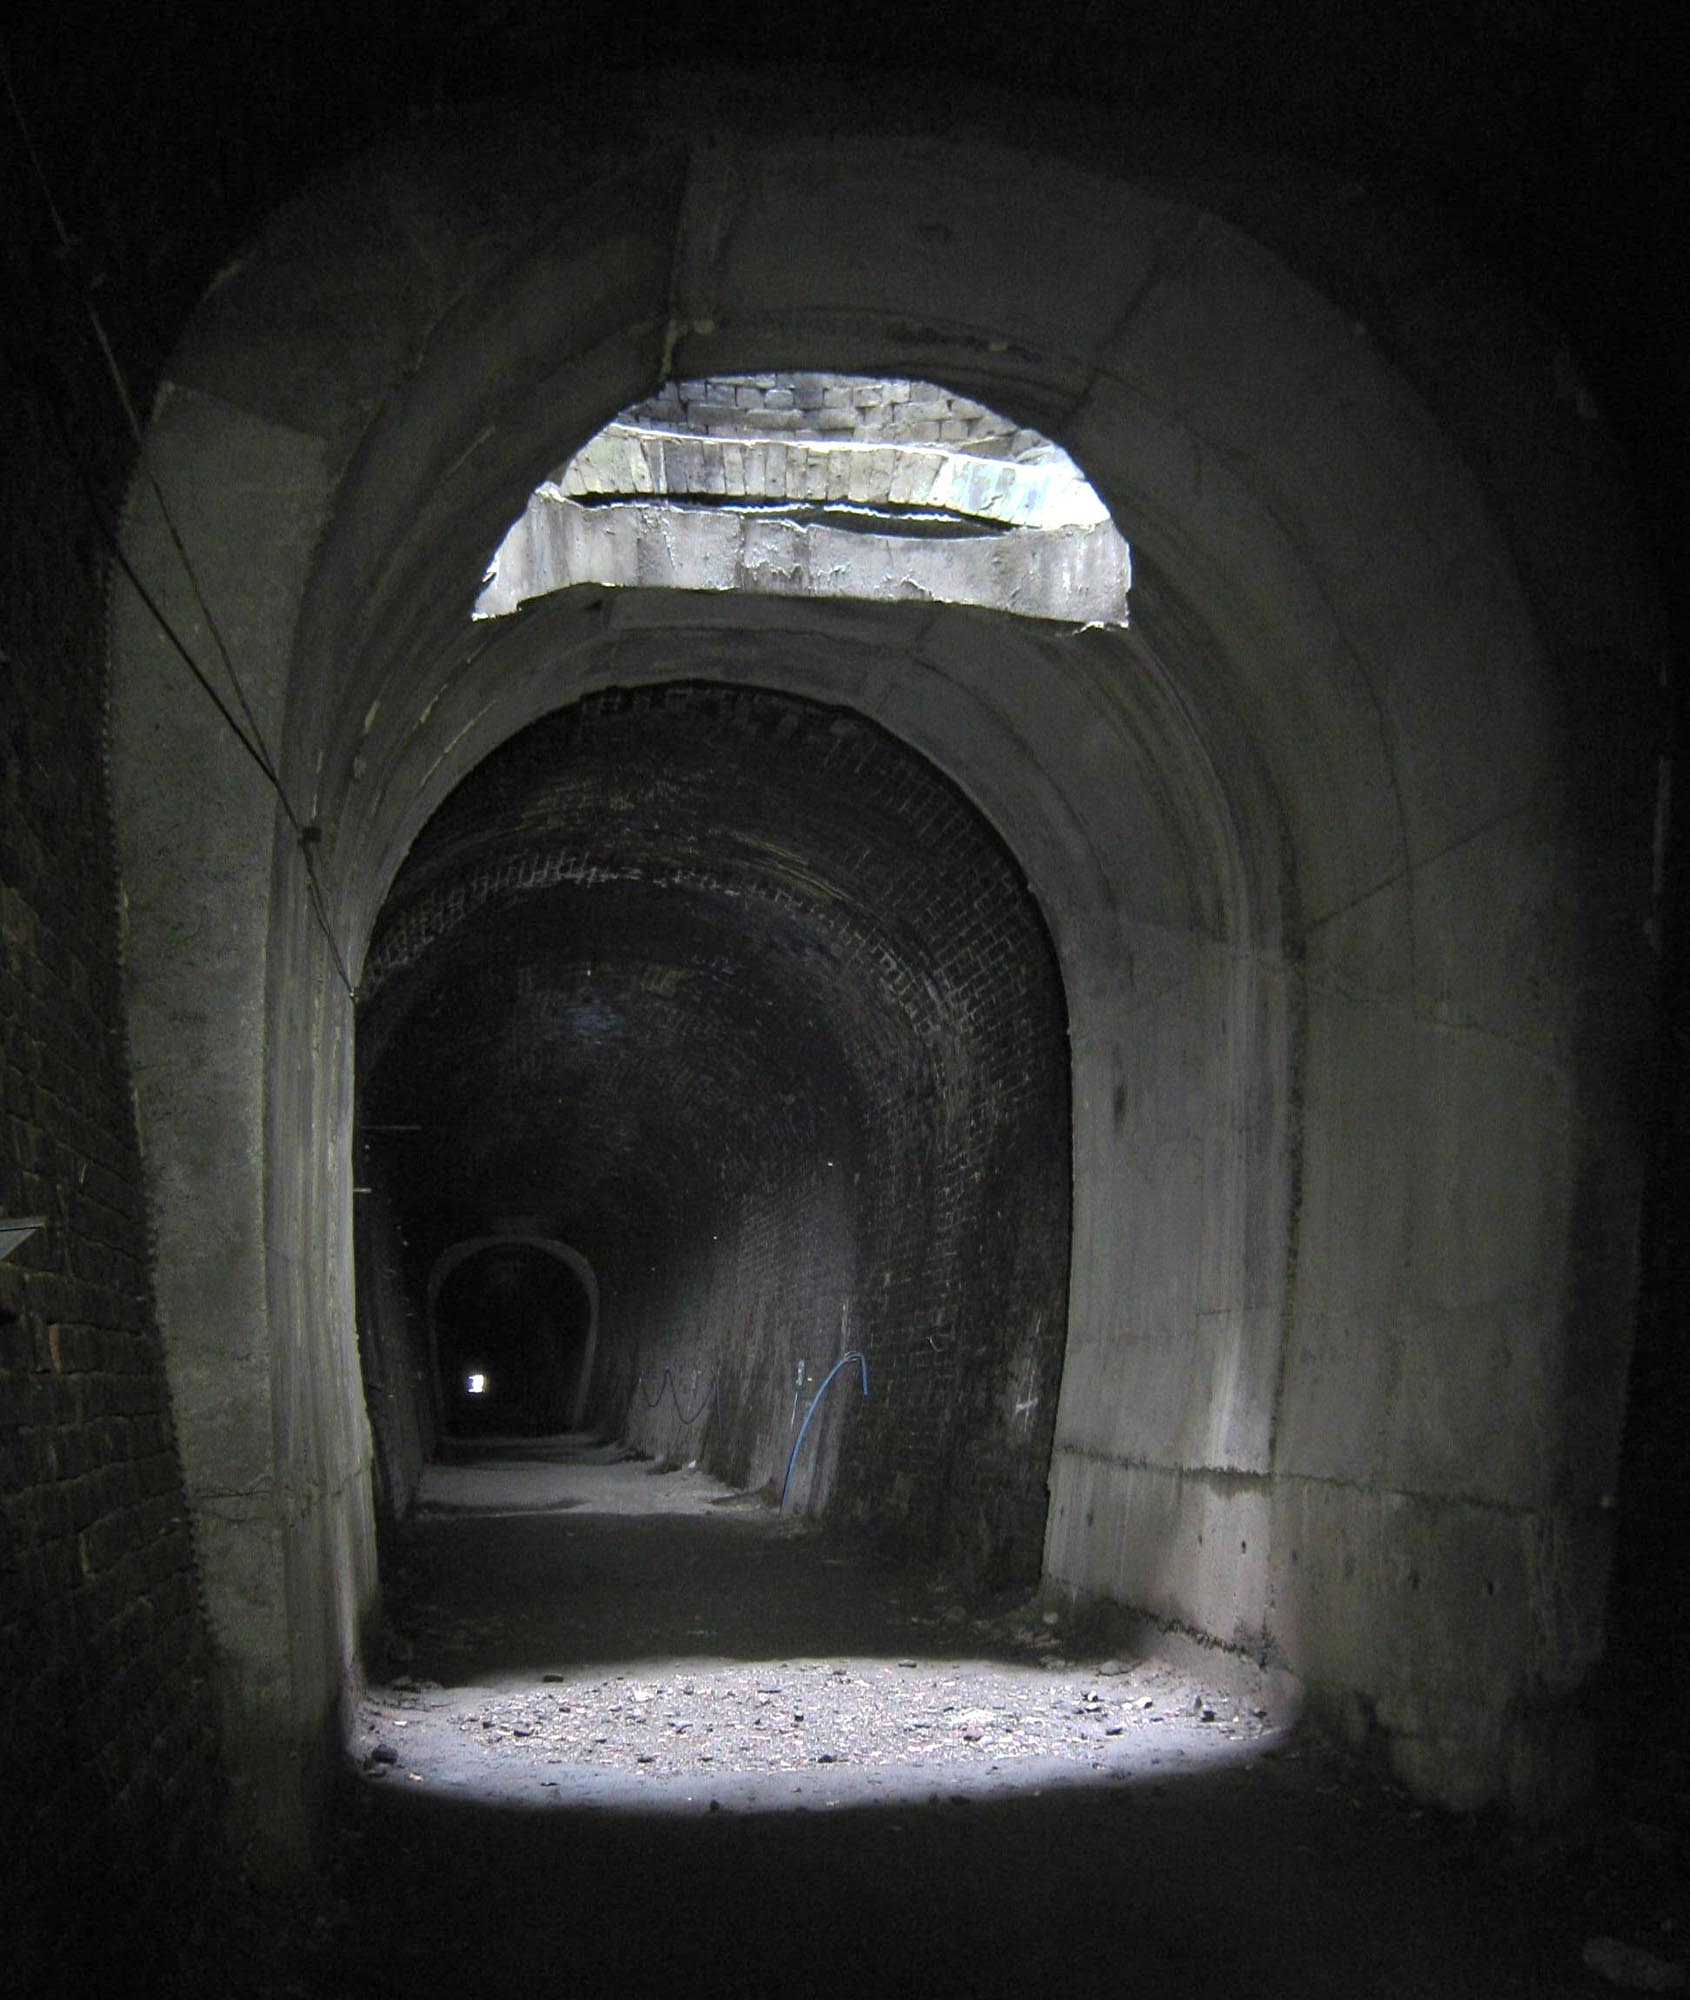 Tunnel interior, excavation shaft 2015 - Keith Rose, Scottish Borders